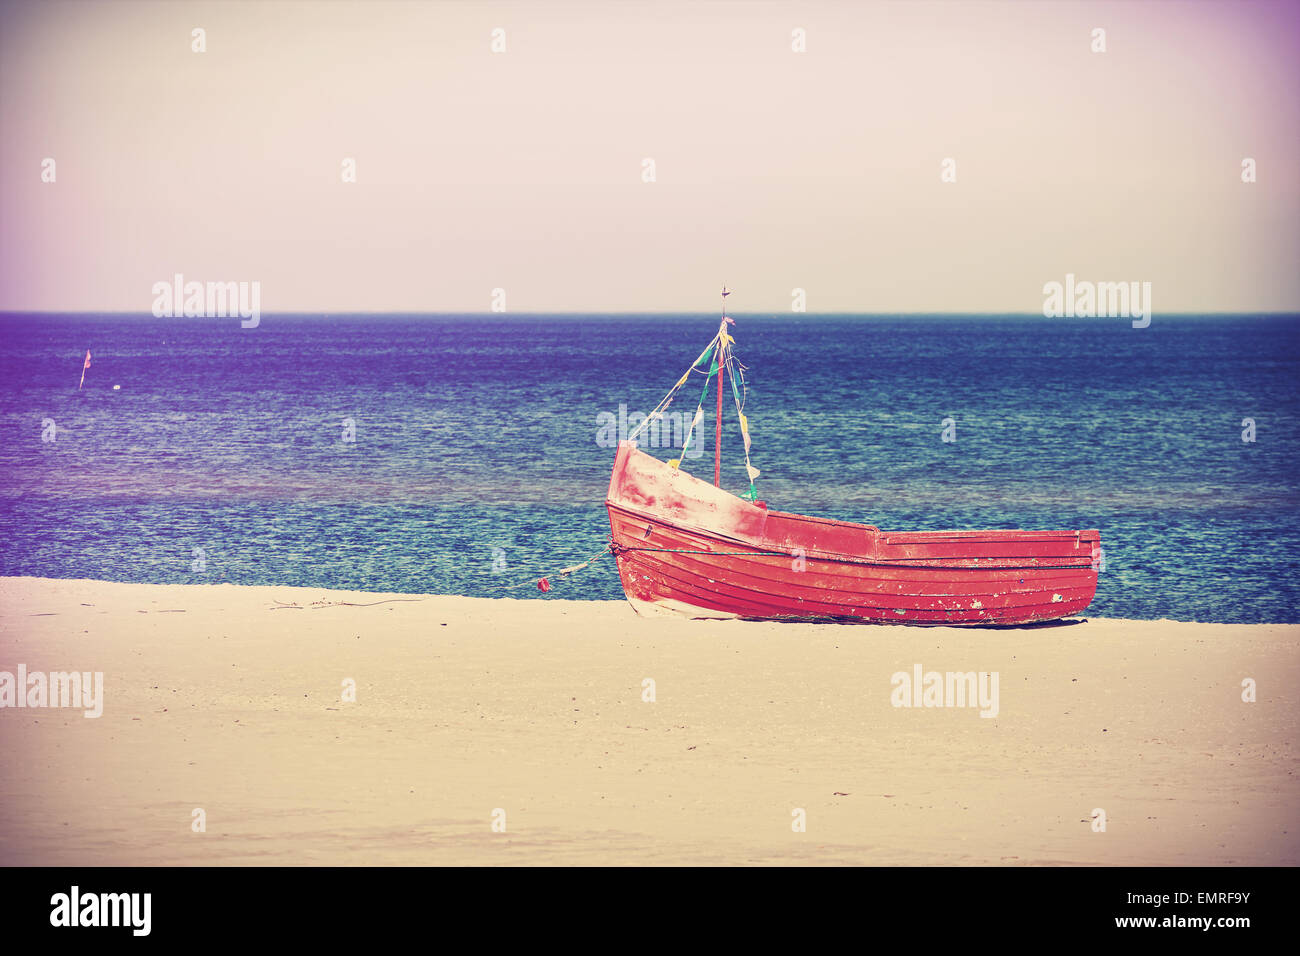 Vintage filtered photo of an old abandoned boat on the beach. - Stock Image